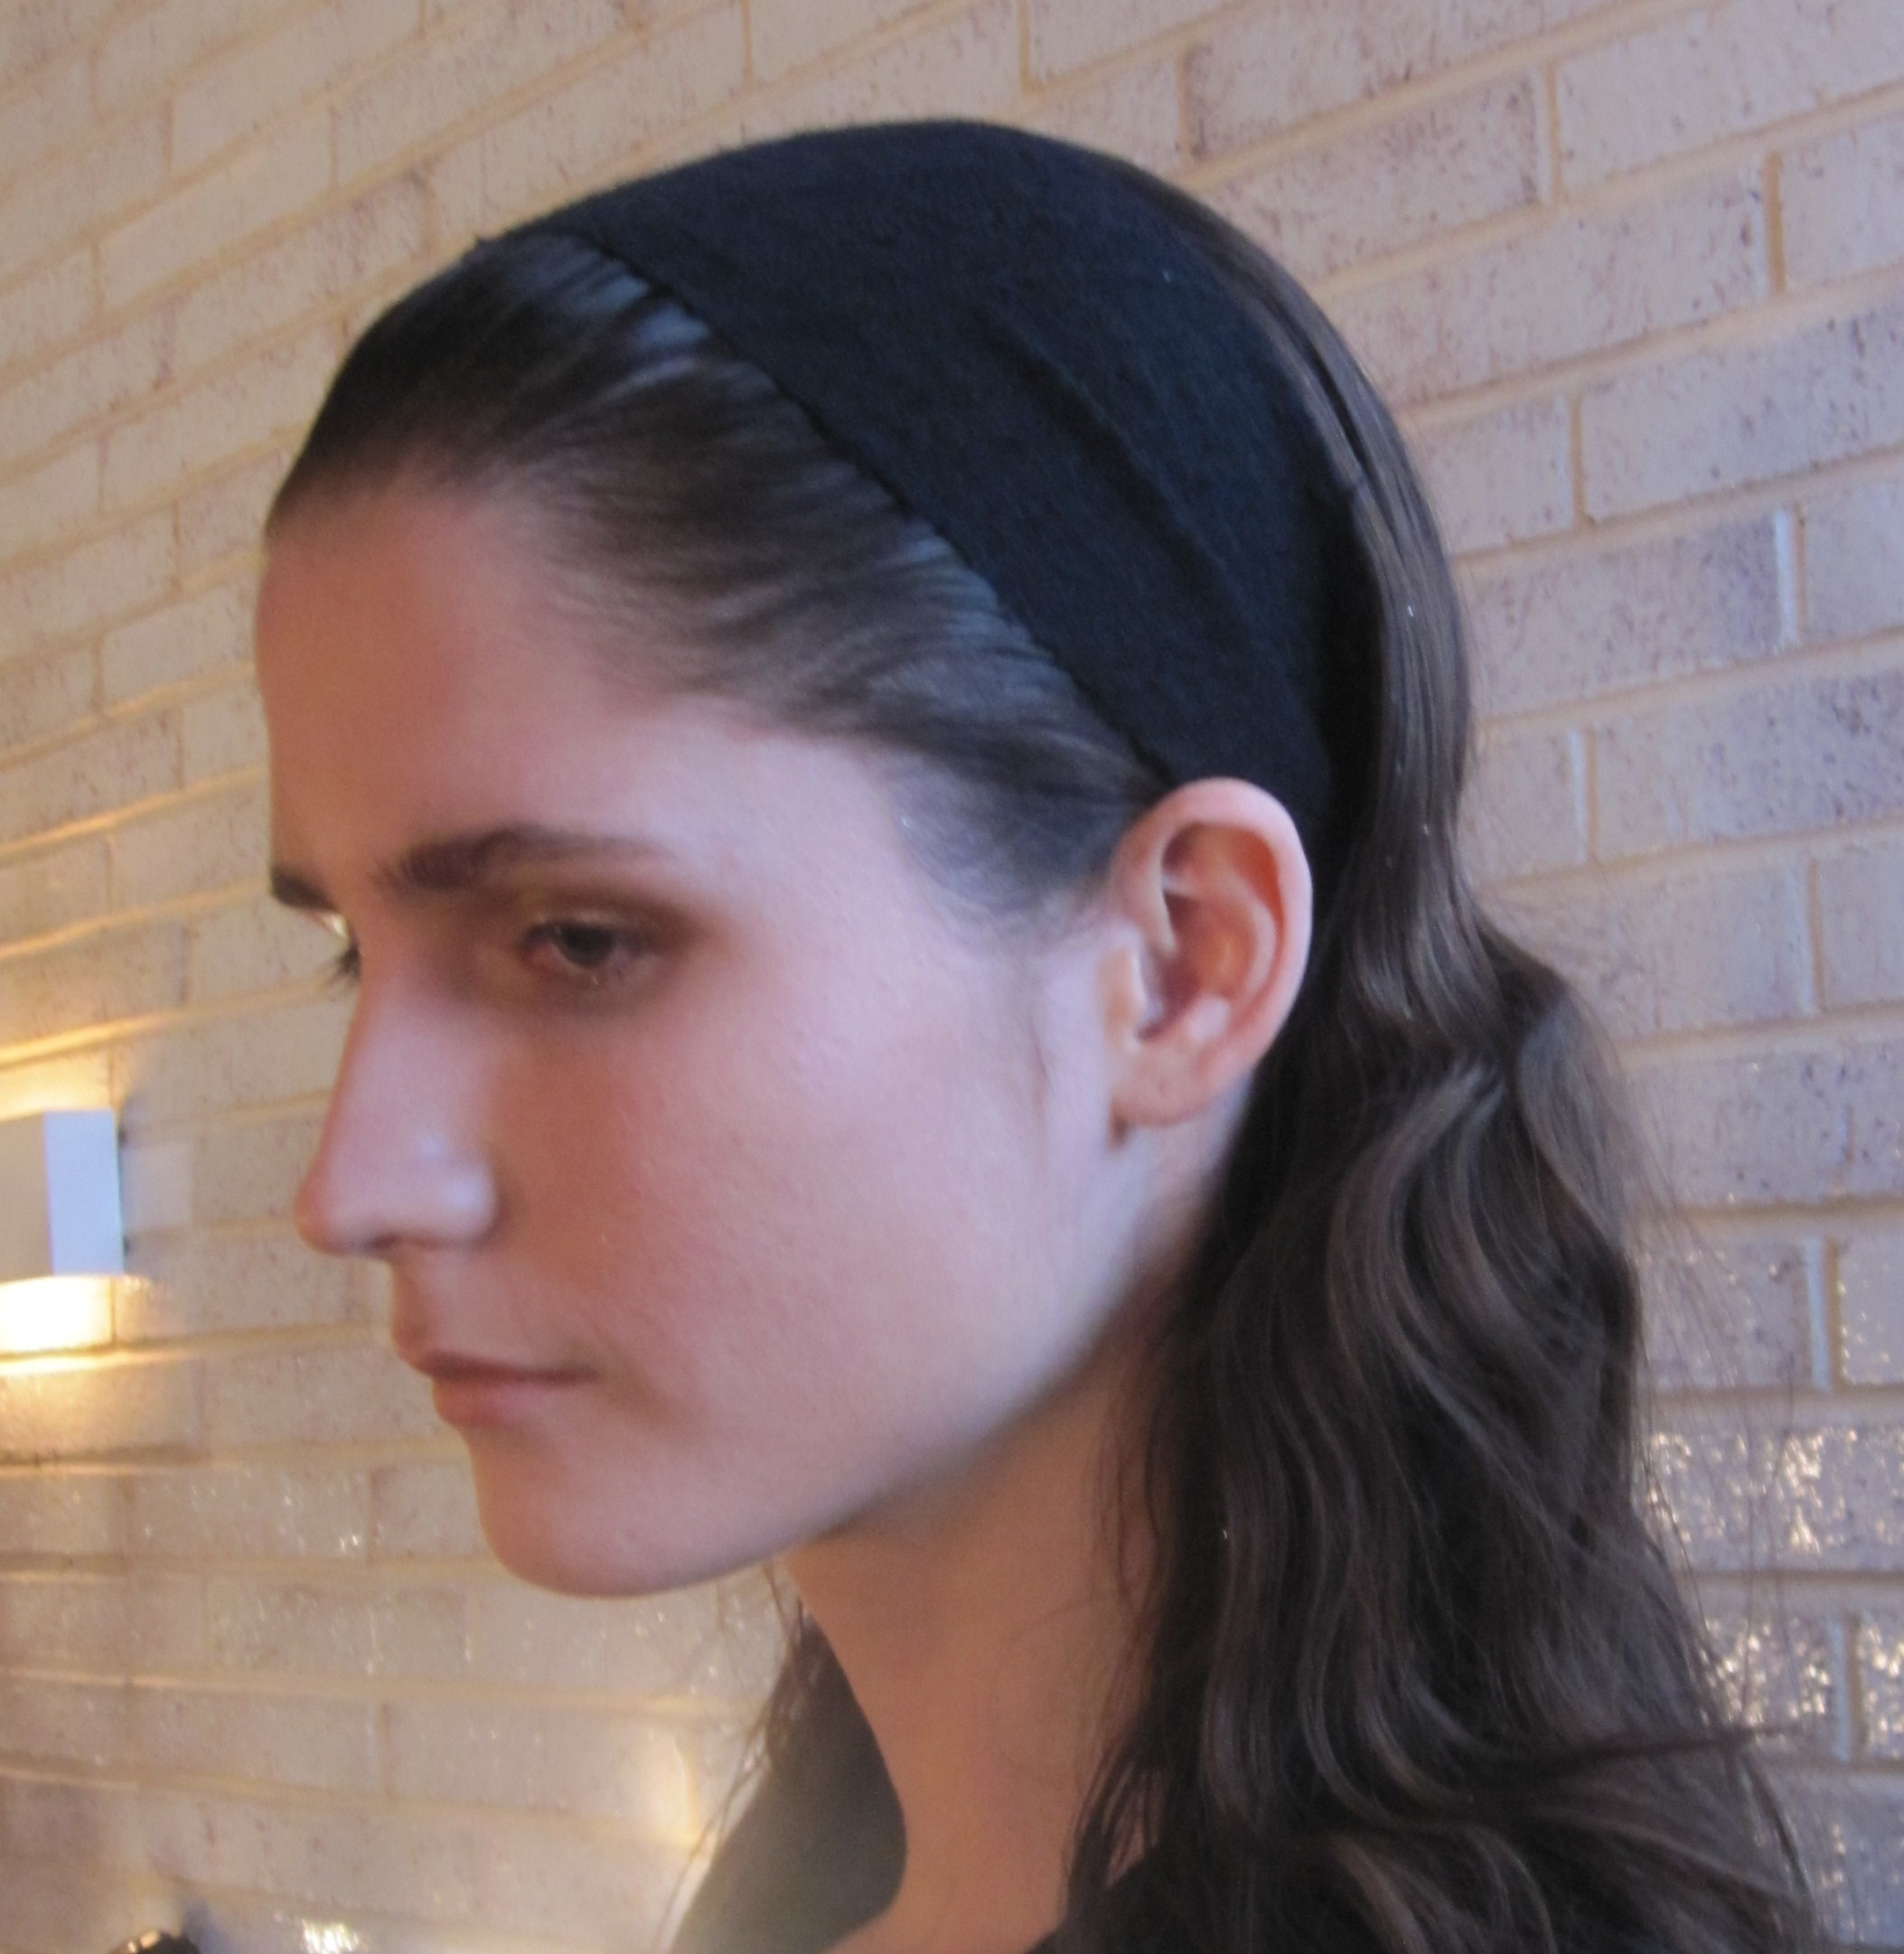 A hair net keeps the model's hair flat until showtime